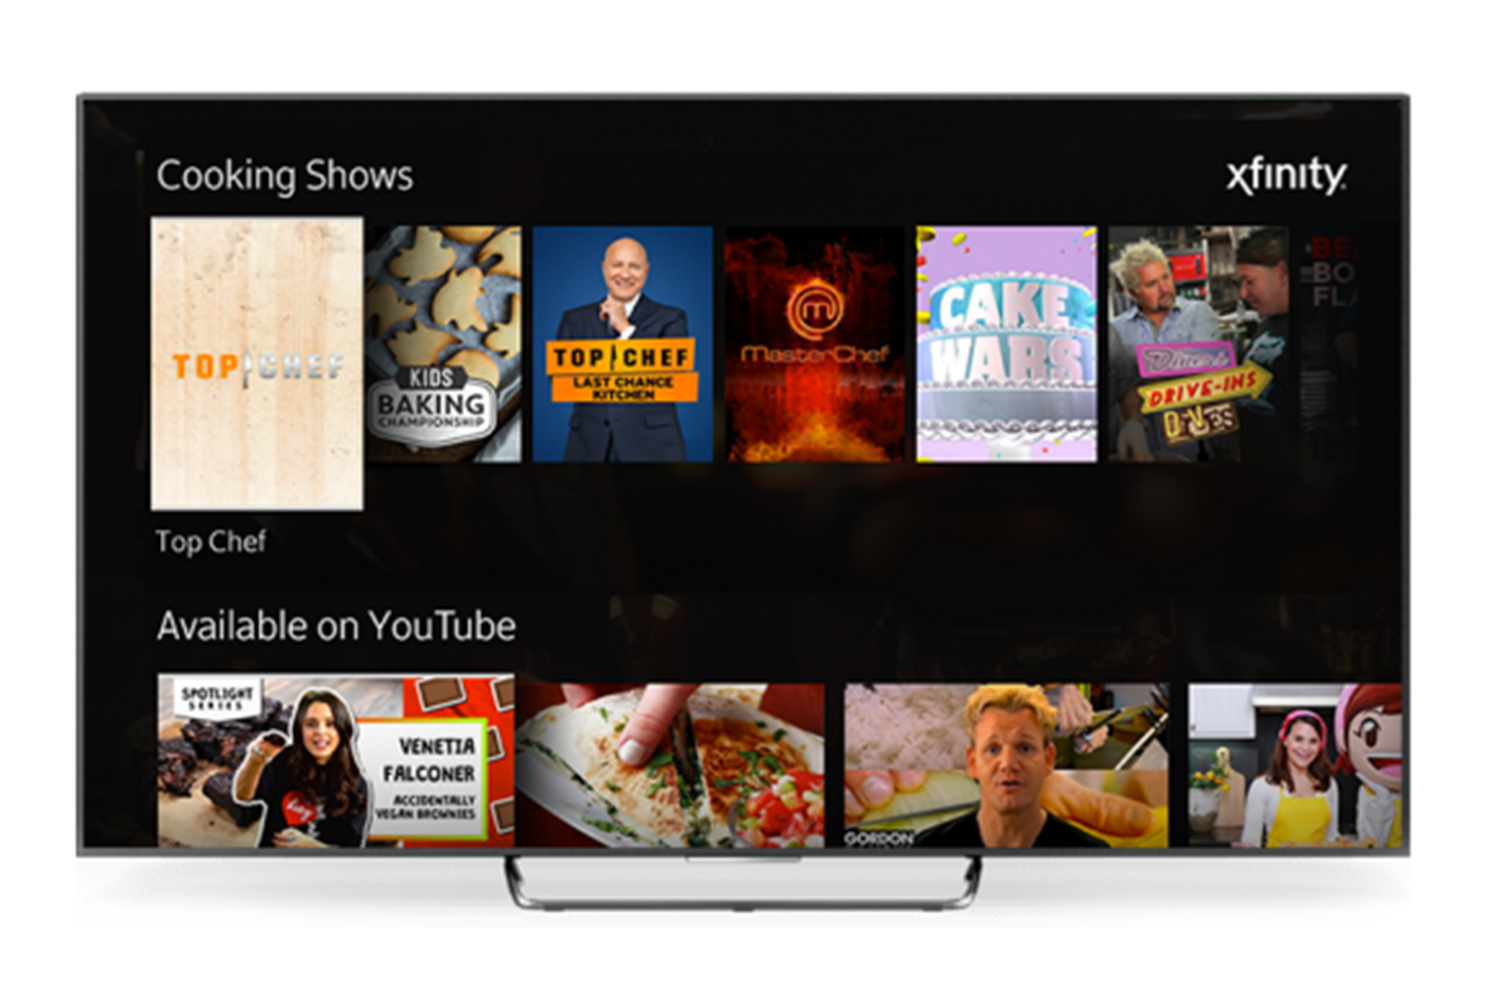 New YouTube app launches on Comcast Xfinity X1 cable box